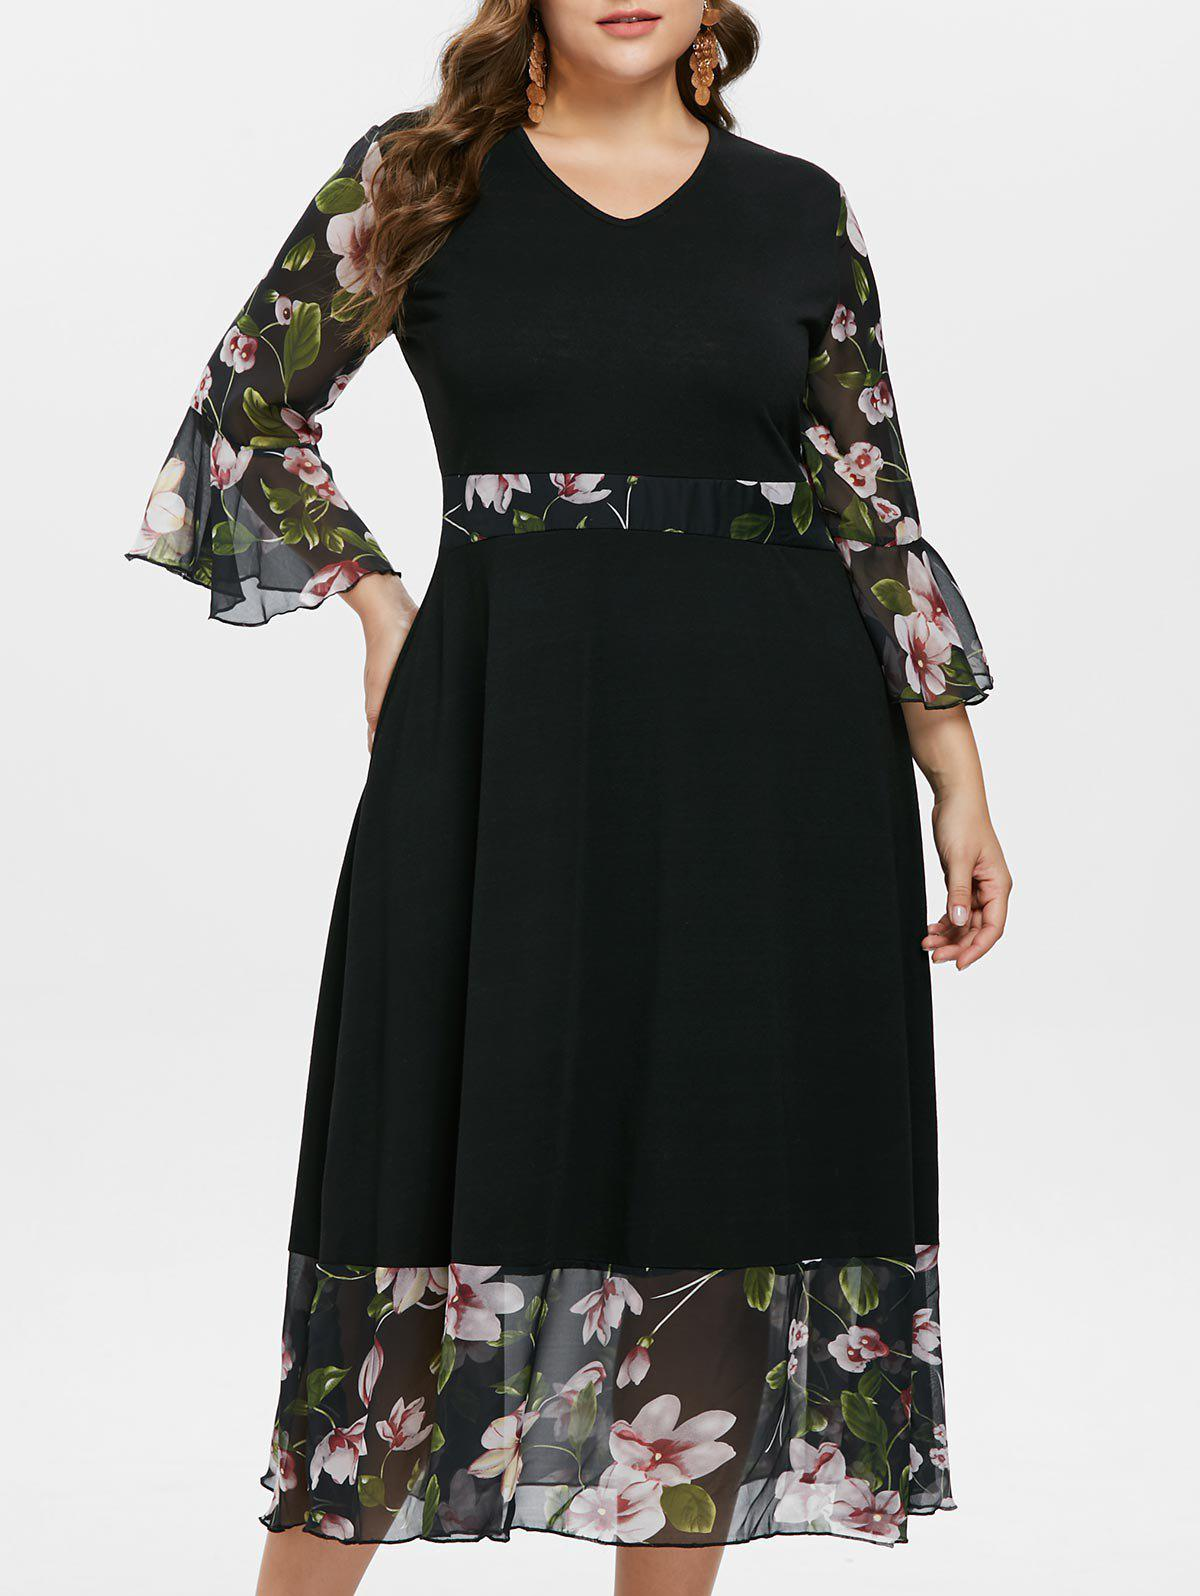 Chic Floral Flare Sleeve Plus Size Maxi Dress